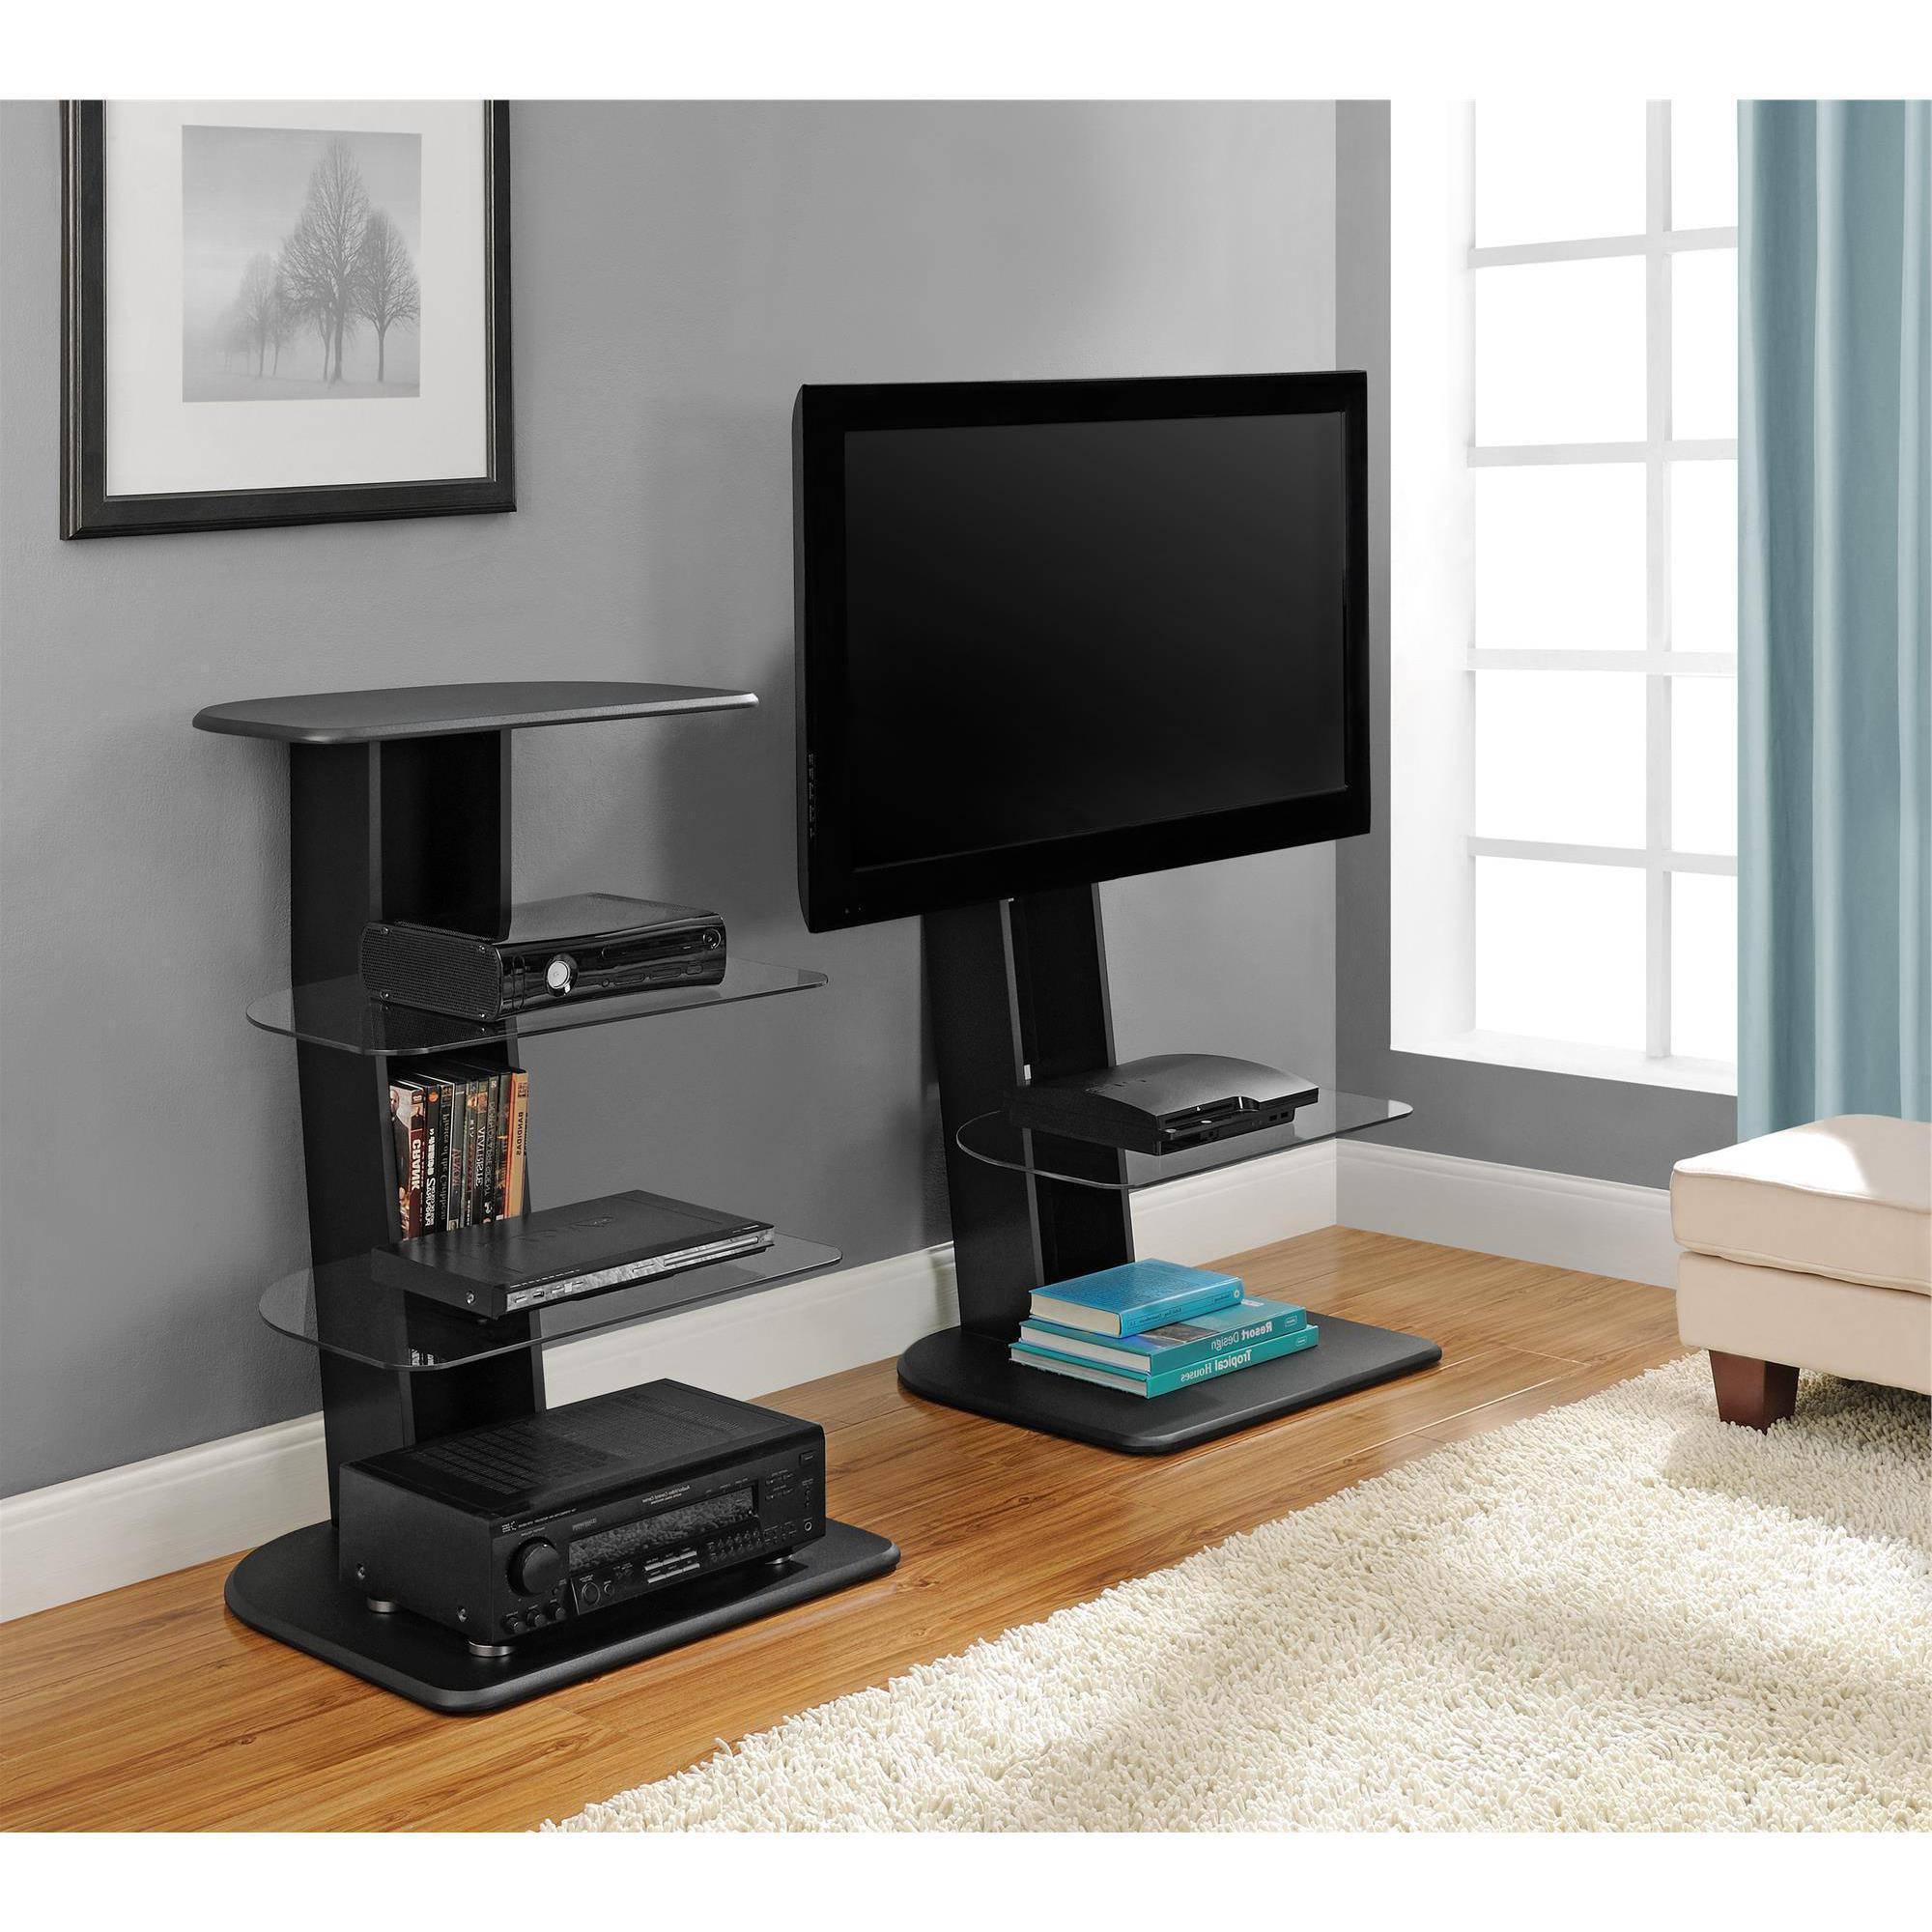 Newest 40 Inch Tv Height With Stand Corner Fireplace Doors – Buyouapp Throughout 40 Inch Corner Tv Stands (View 18 of 20)